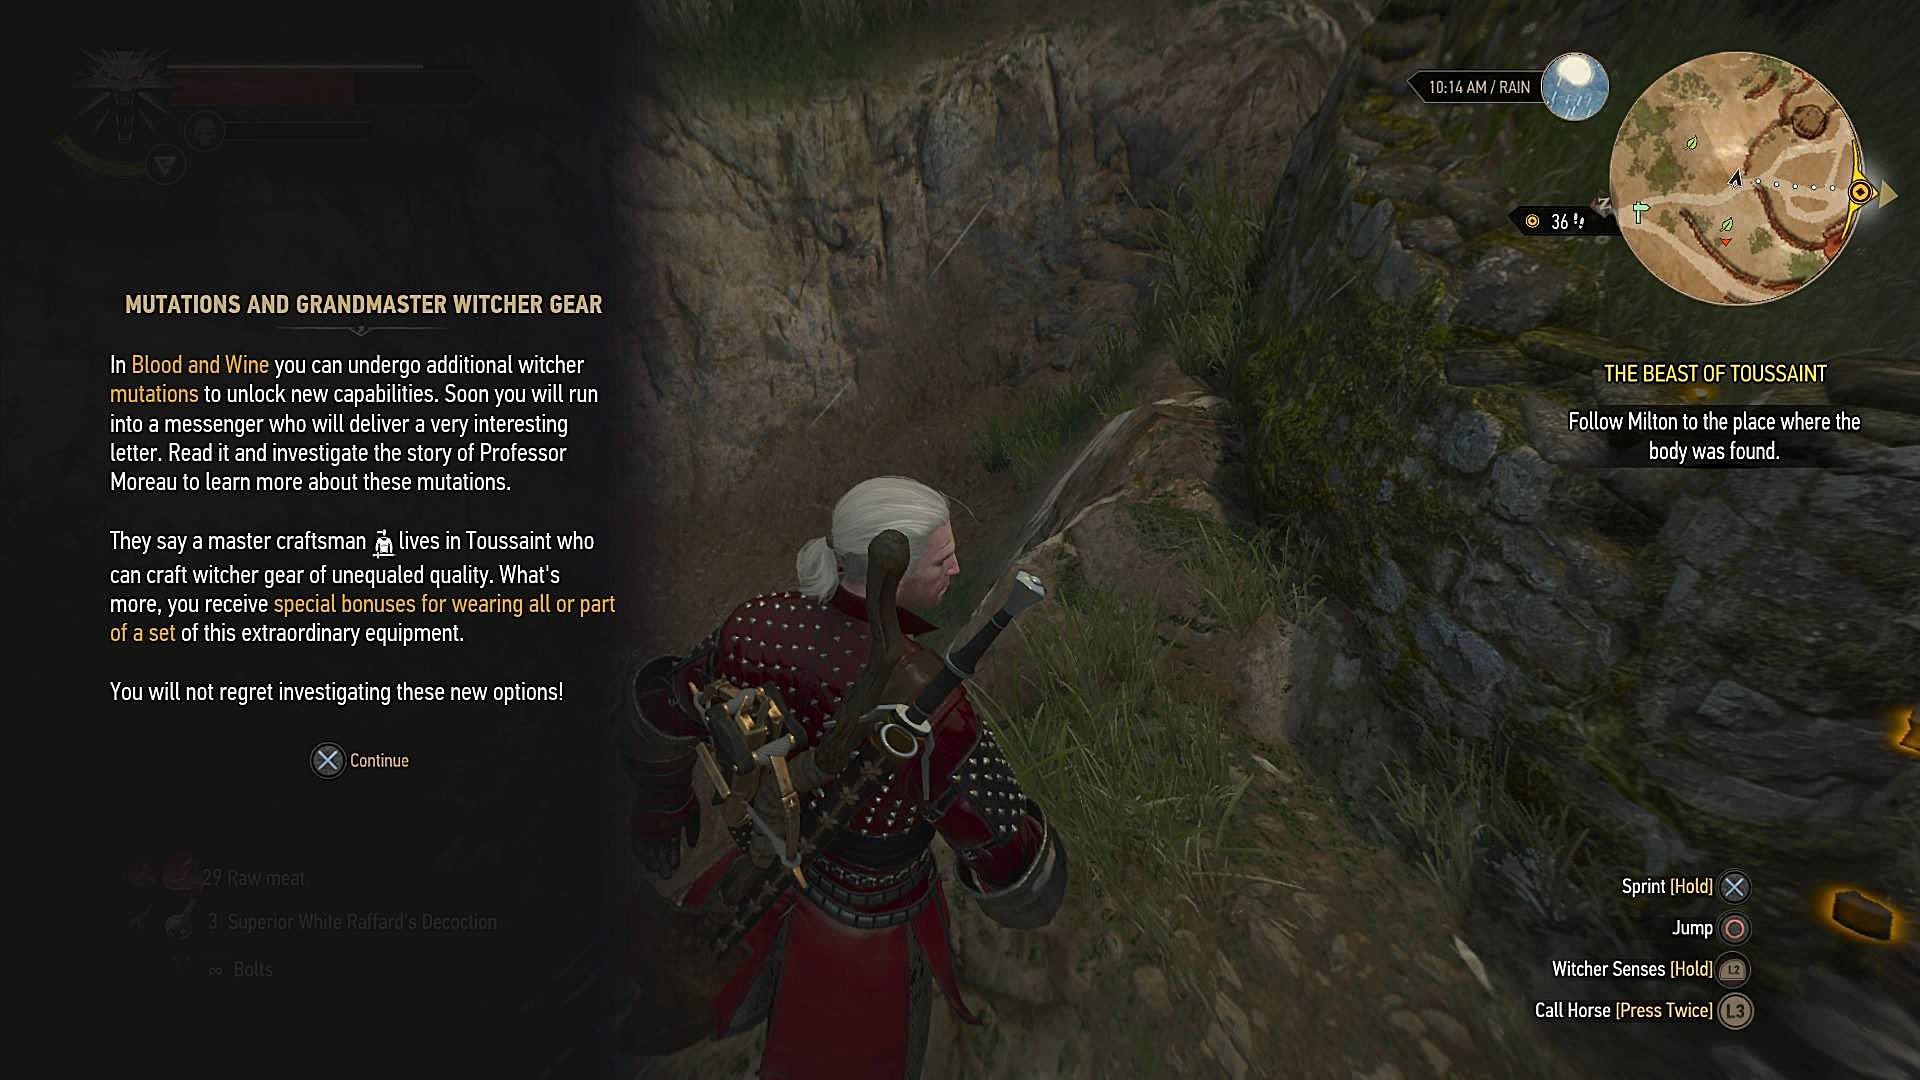 Guide to Getting Started and The Grandmaster: The Witcher 3 Blood